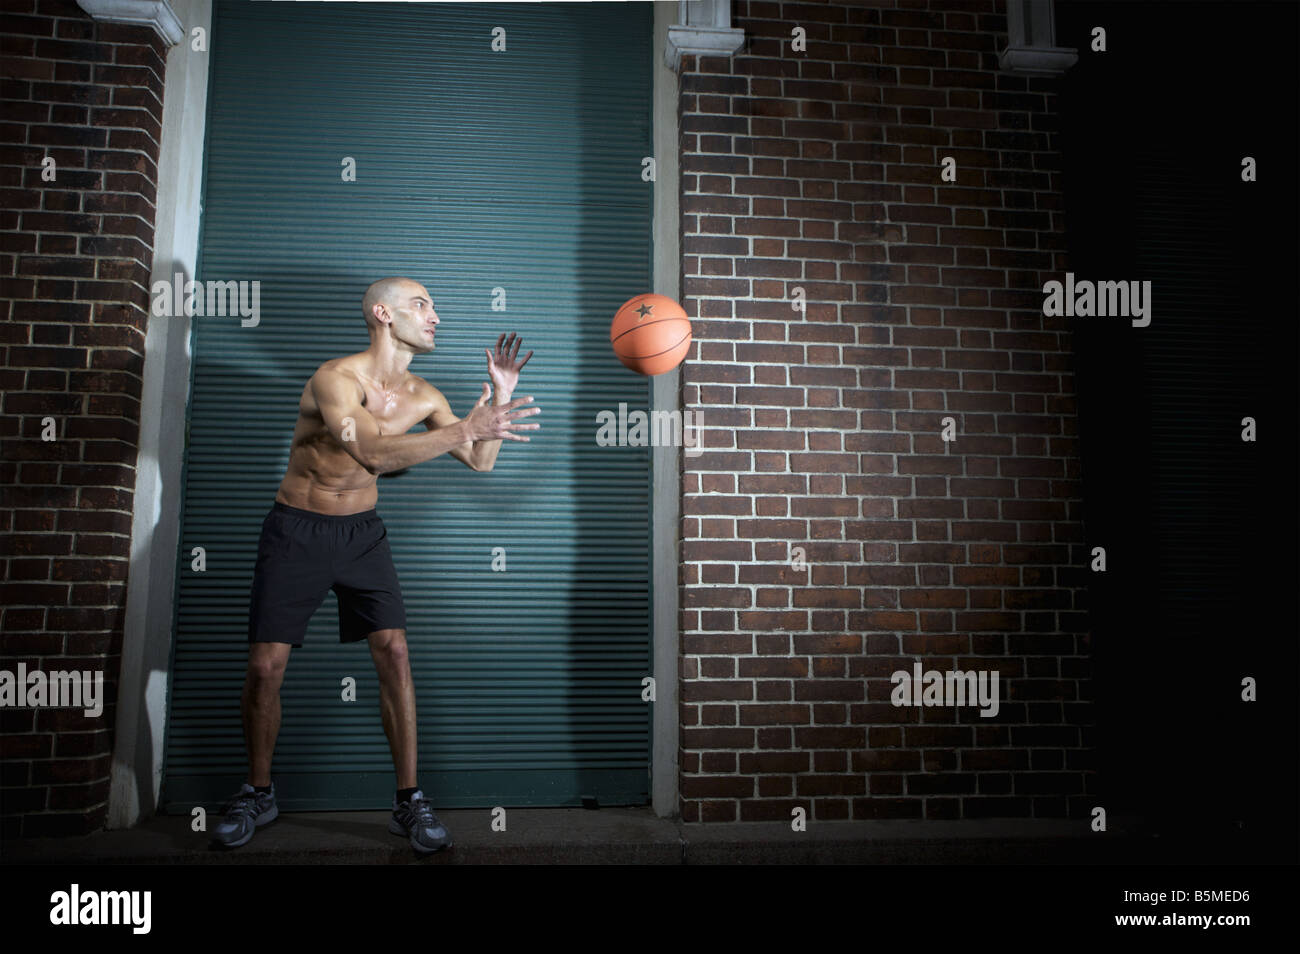 A shirtless man about to catch an airborne basketball - Stock Image